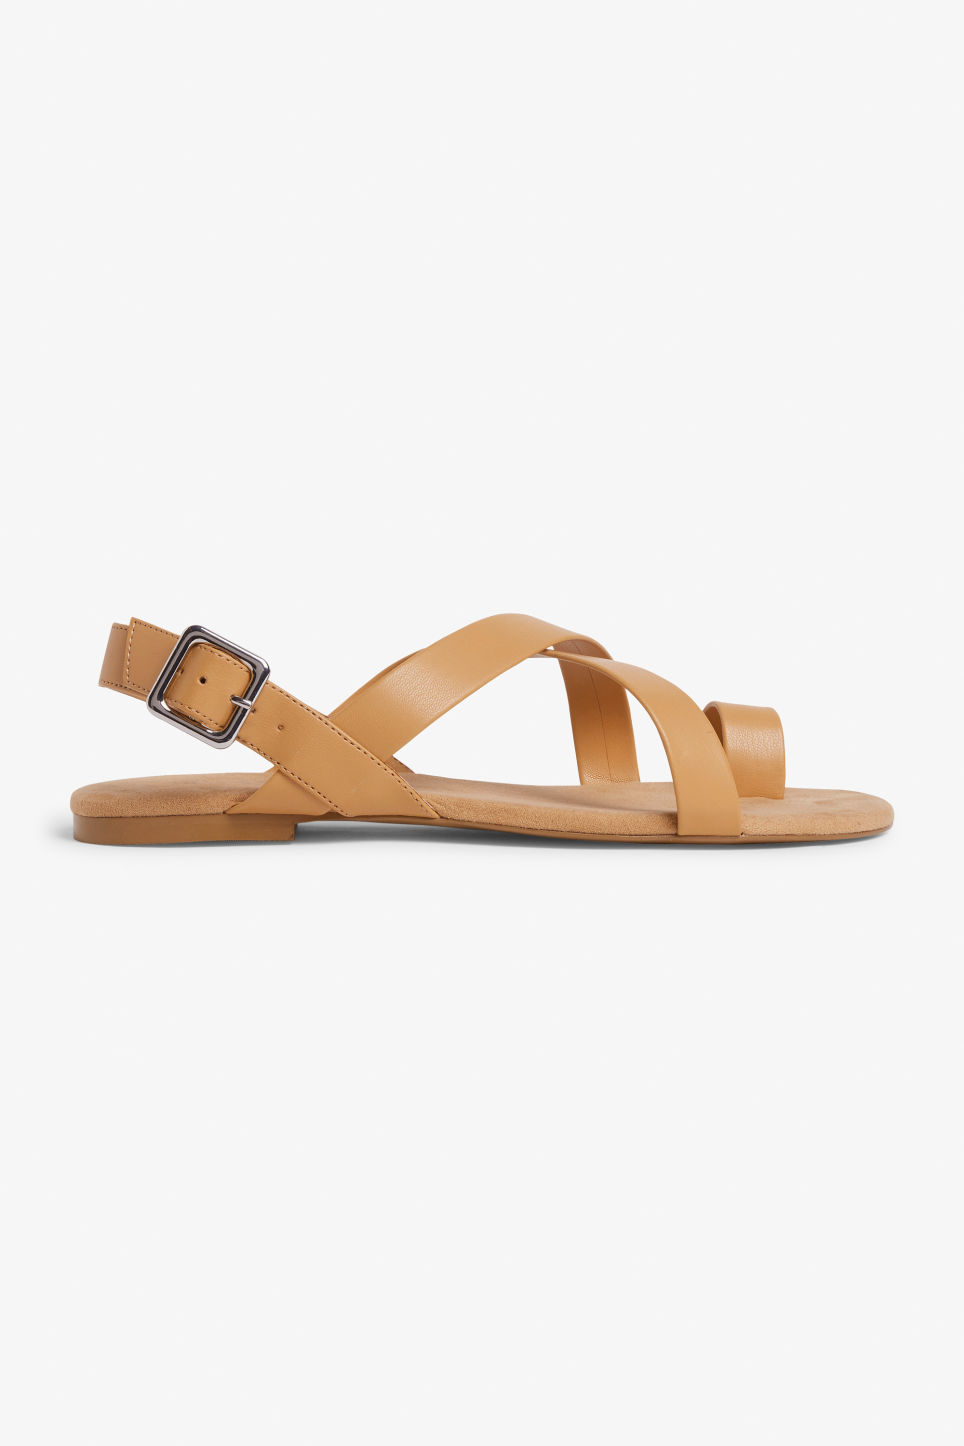 Detailed image of Monki cross-over strap sandals in yellow